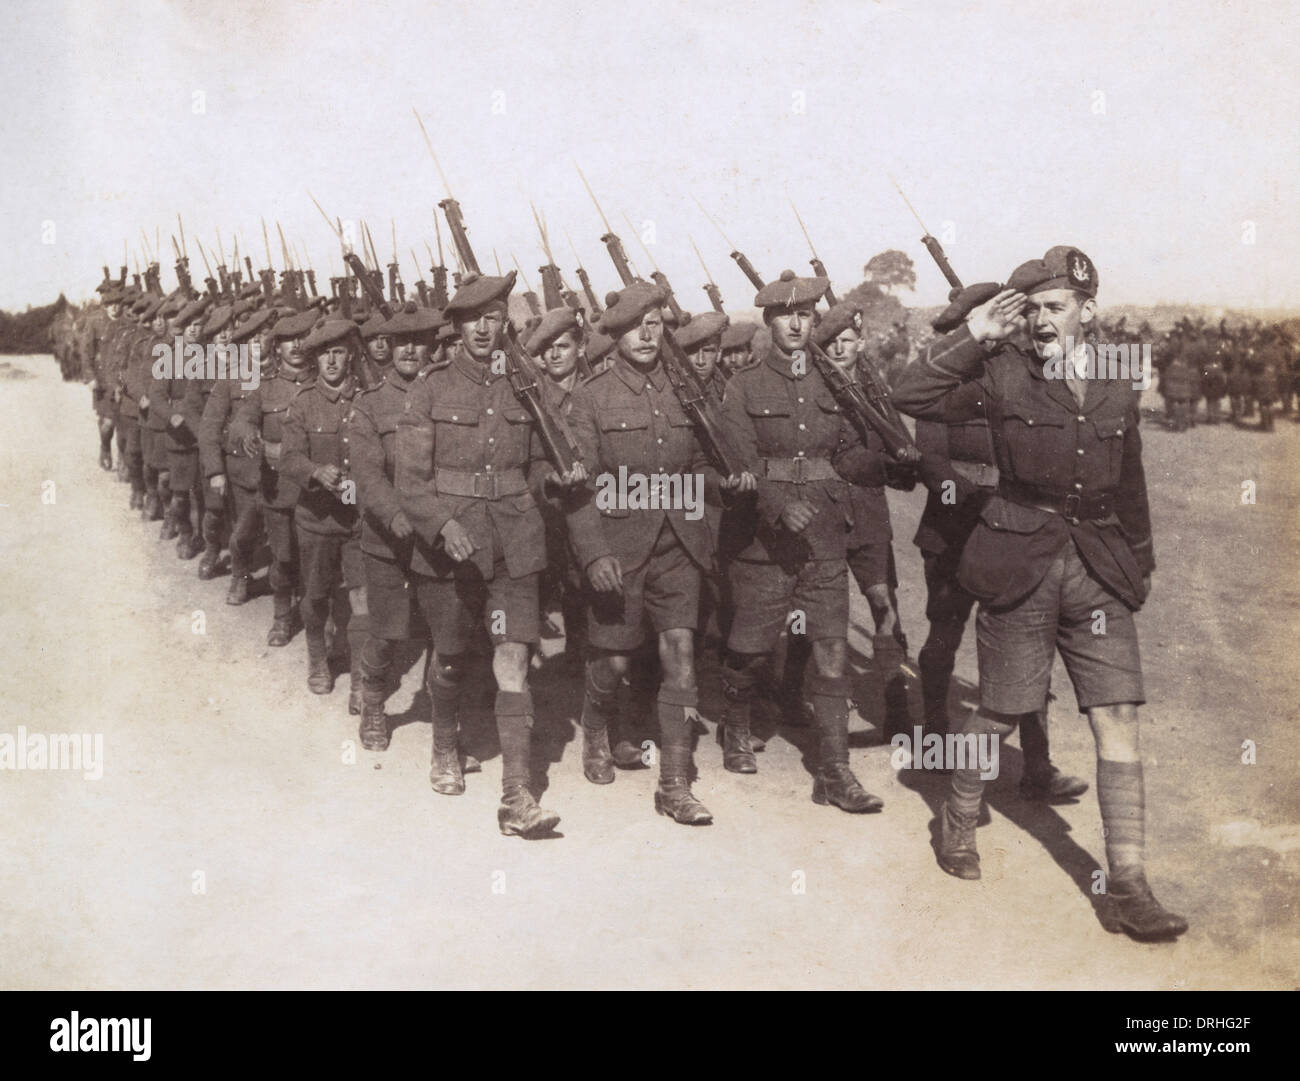 March past at medal presentation ceremony, WW1 - Stock Image